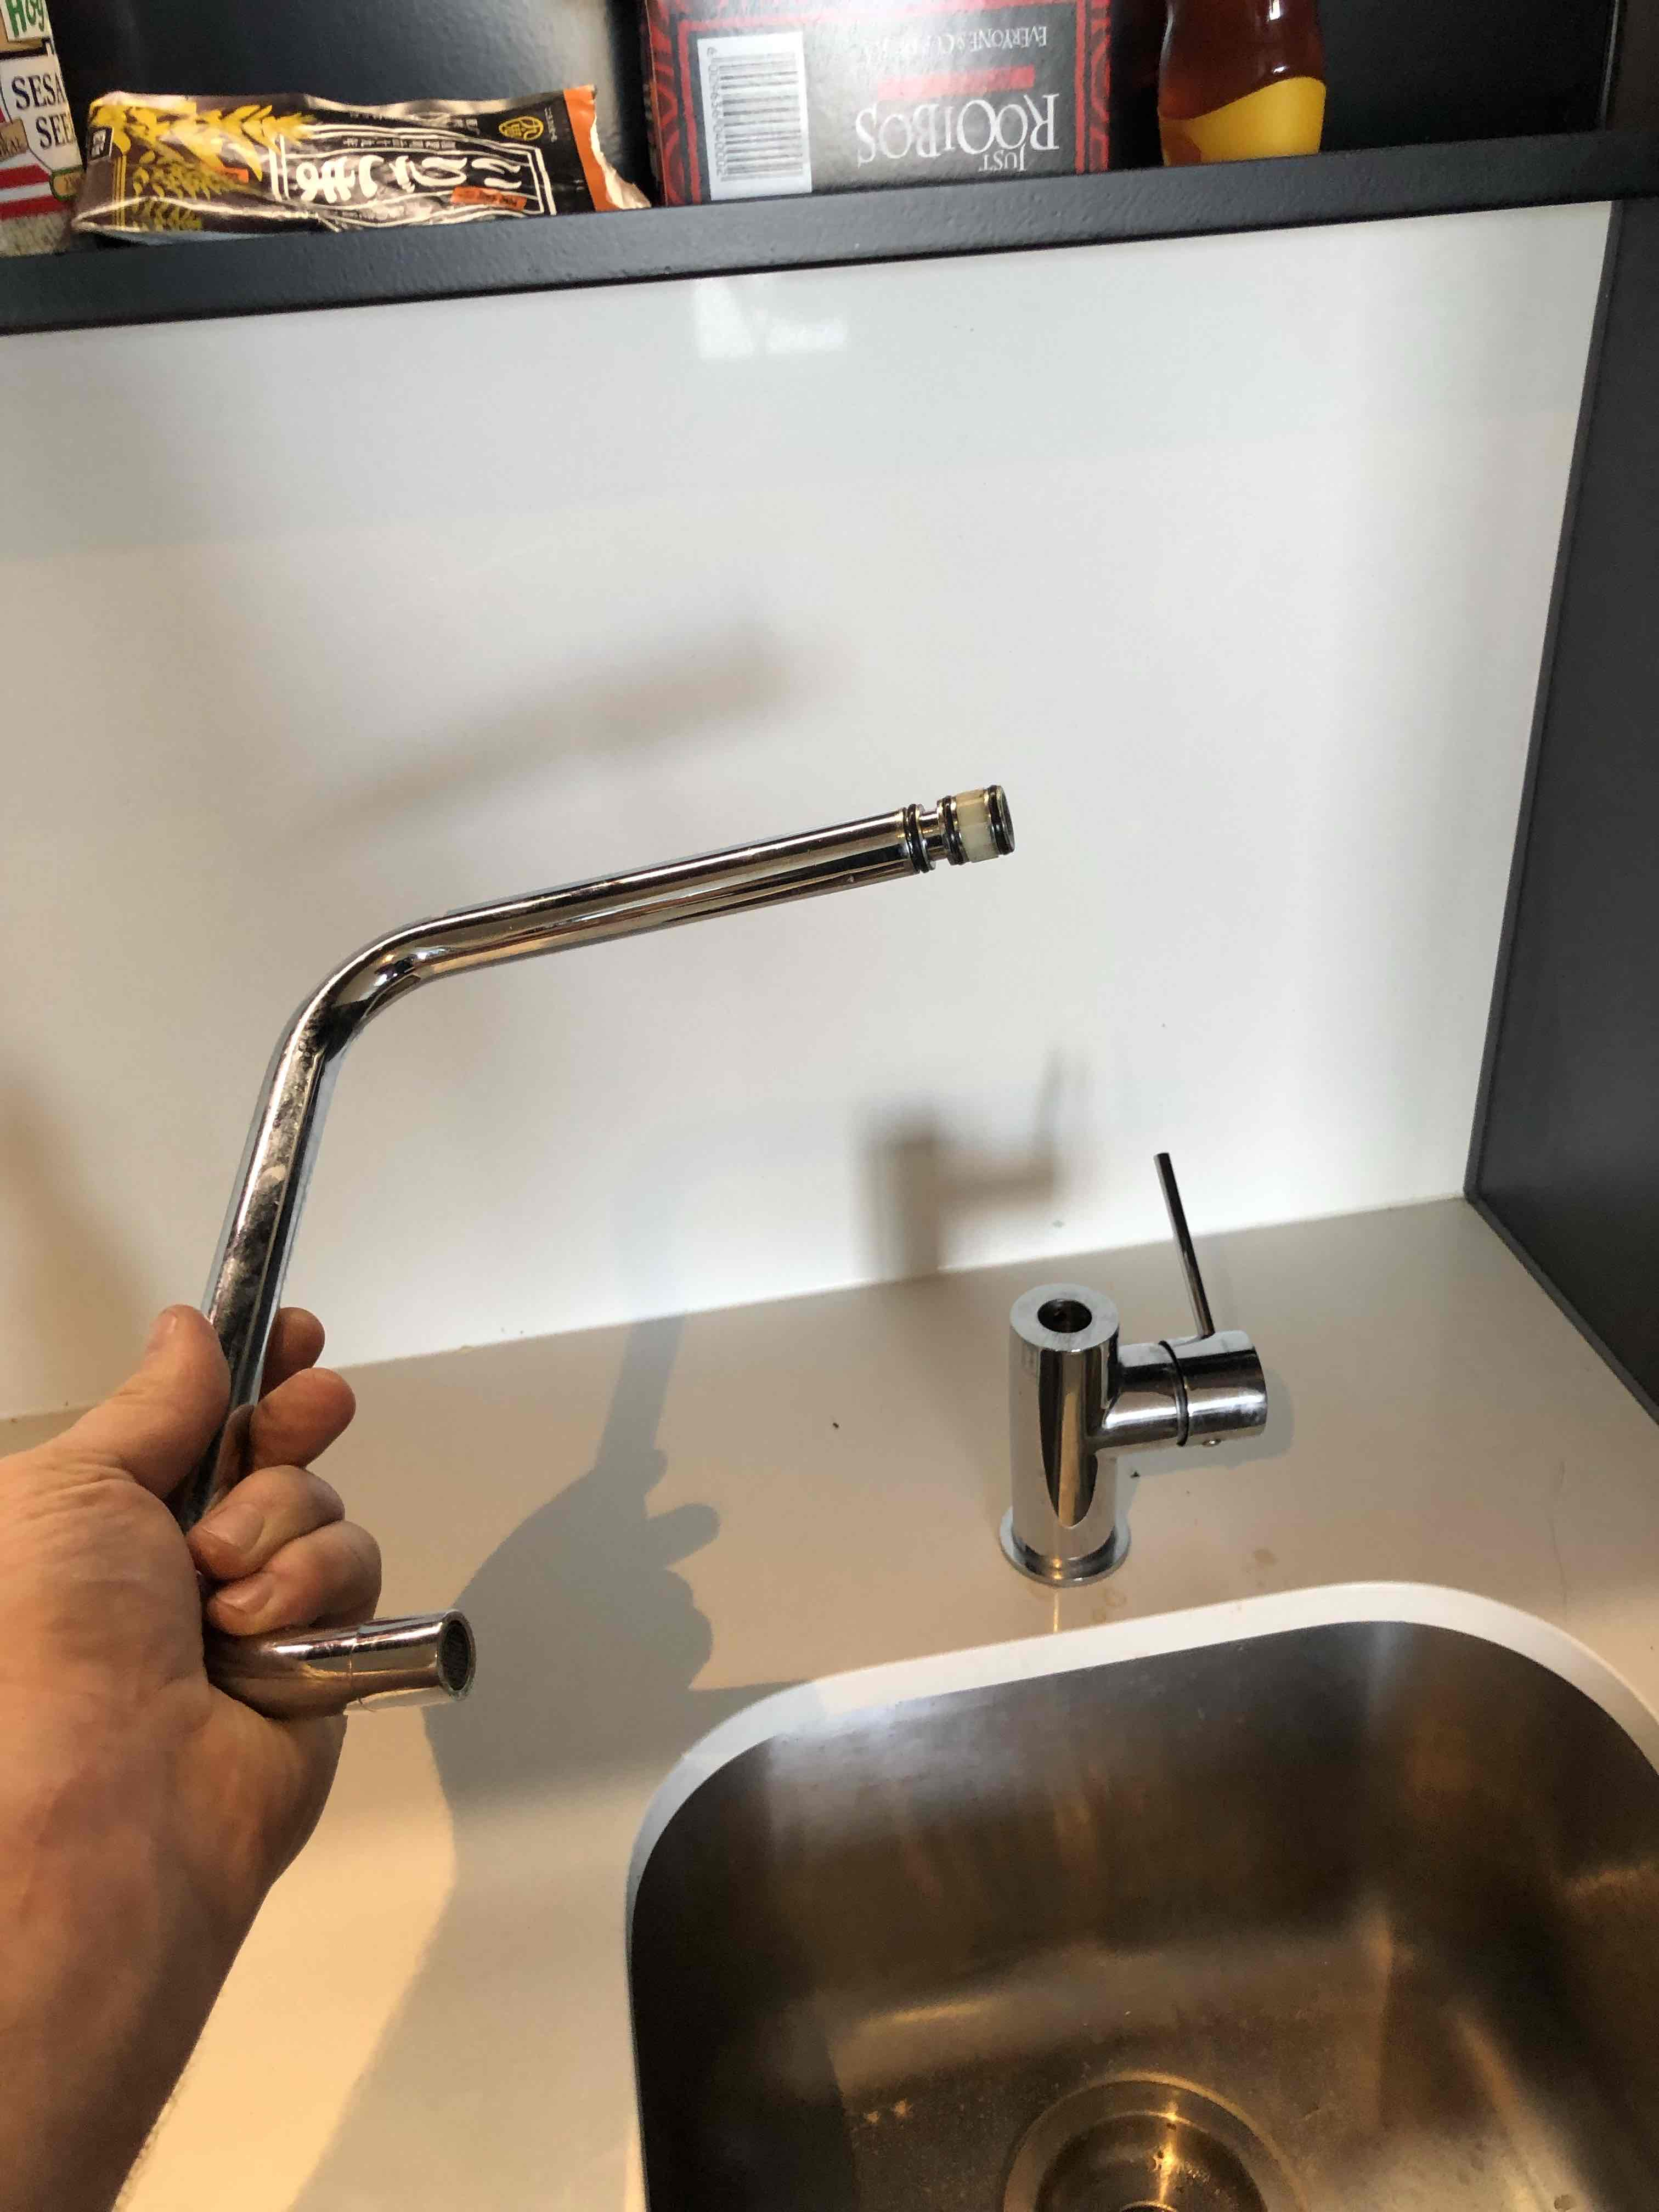 Leaking Taps and Toilet Repairs at Collingwood By P.A.D Plumbing & Maintenance Pty Ltd via i4Tradies